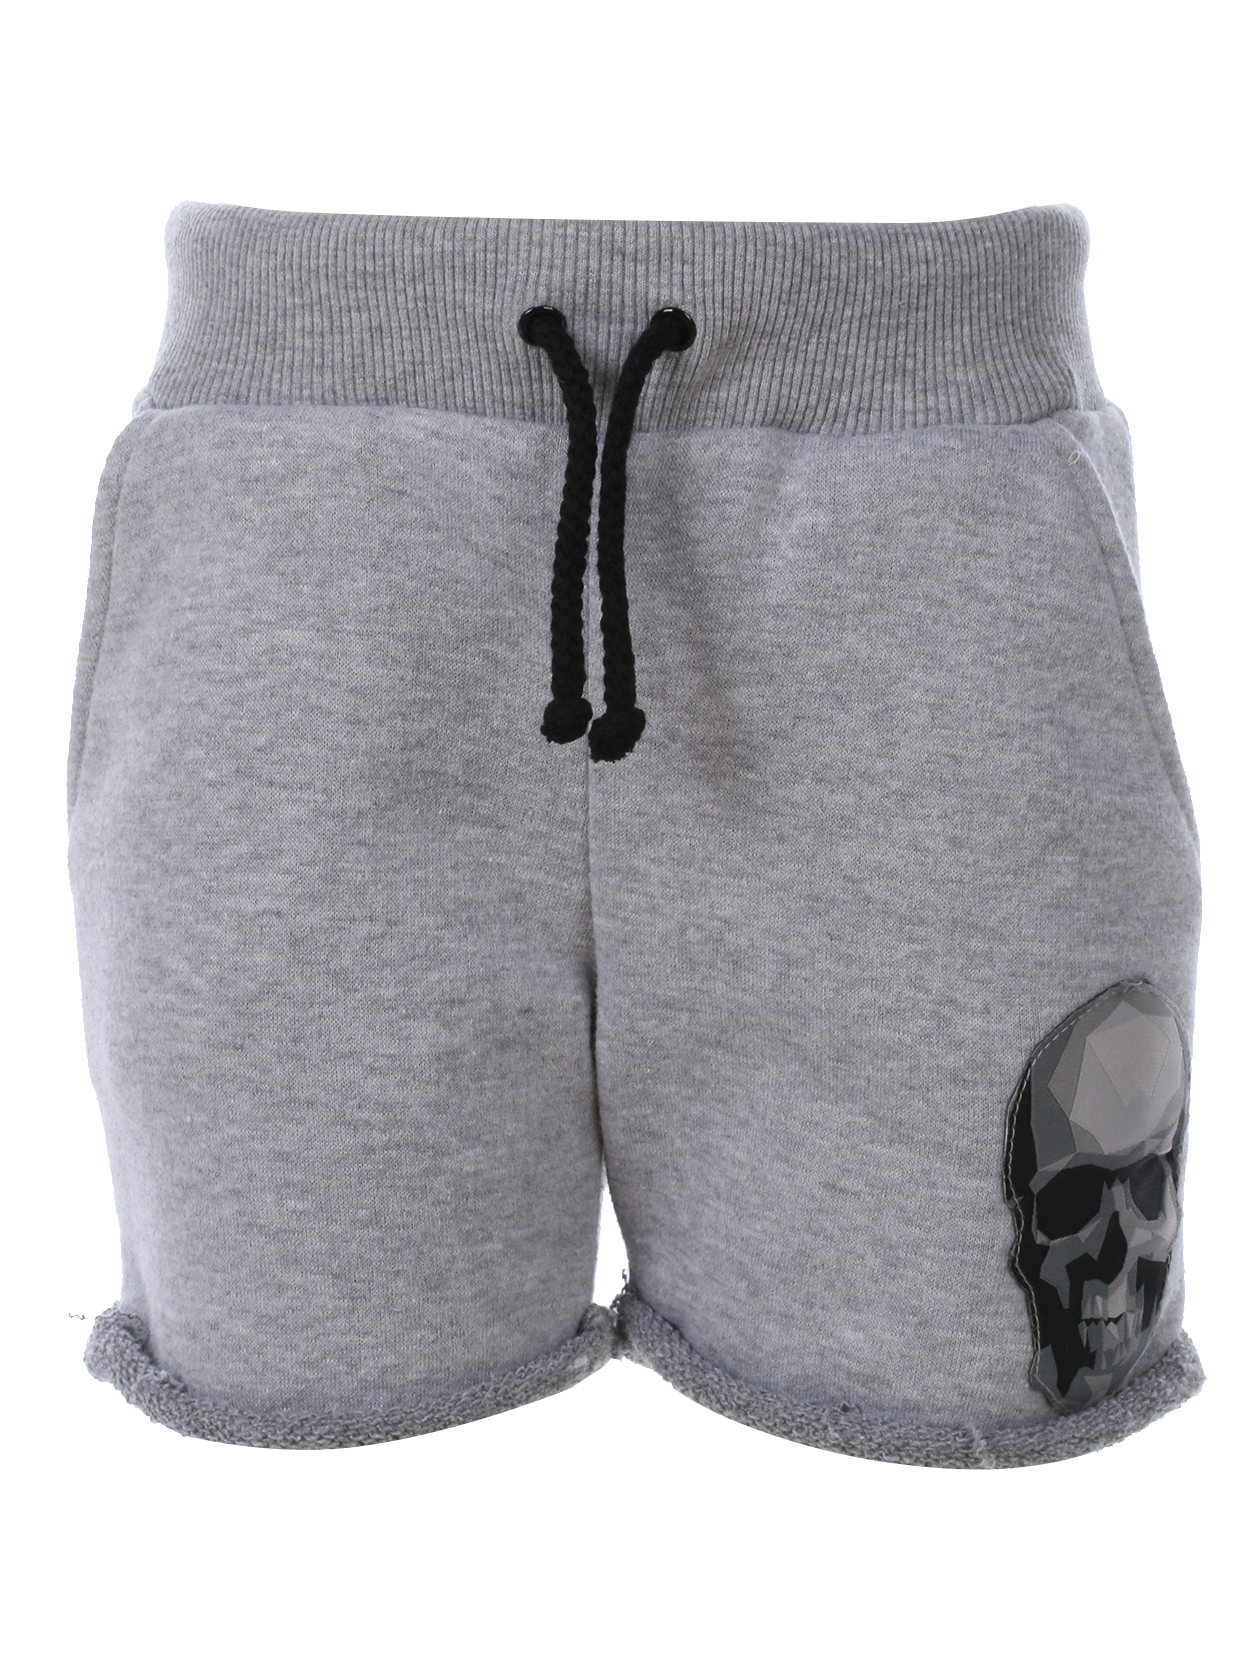 Kids shorts SkullKids shorts by Black Star Wear. Knee length, lacing, regular waist, side pockets, raw cut. 100% natural cotton. Low poly skull patch on the left side. Avaliable in gray.<br><br>size: 3-4 years<br>color: Grey<br>gender: unisex